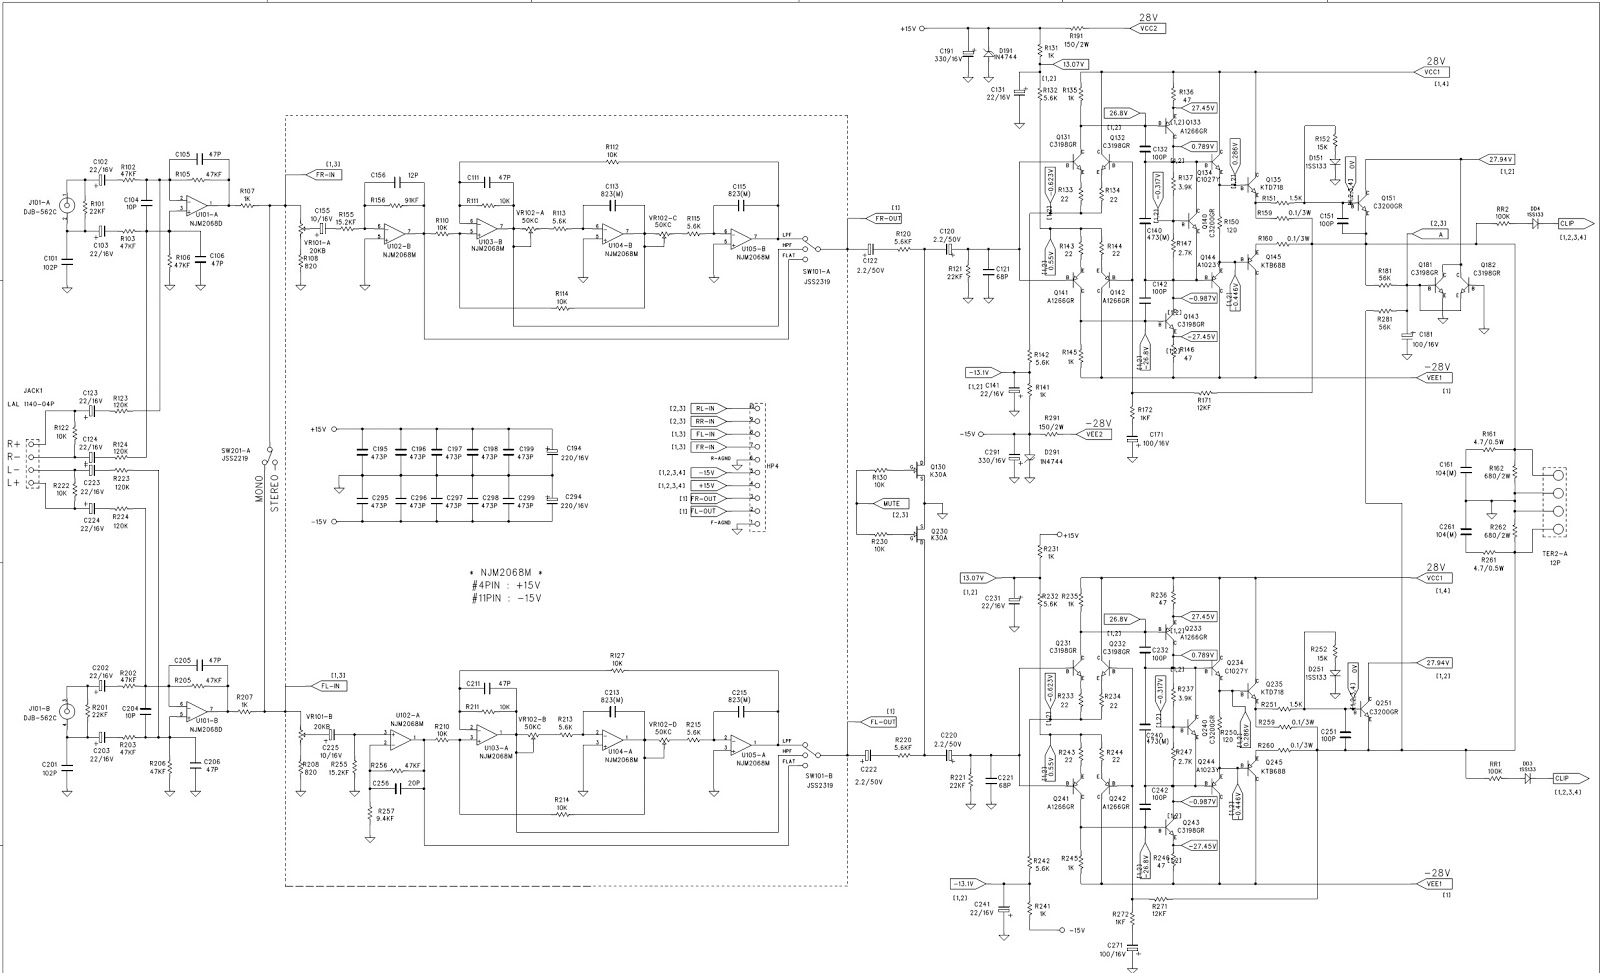 Infinity 5760a wiring diagram – circuit diagram - 6